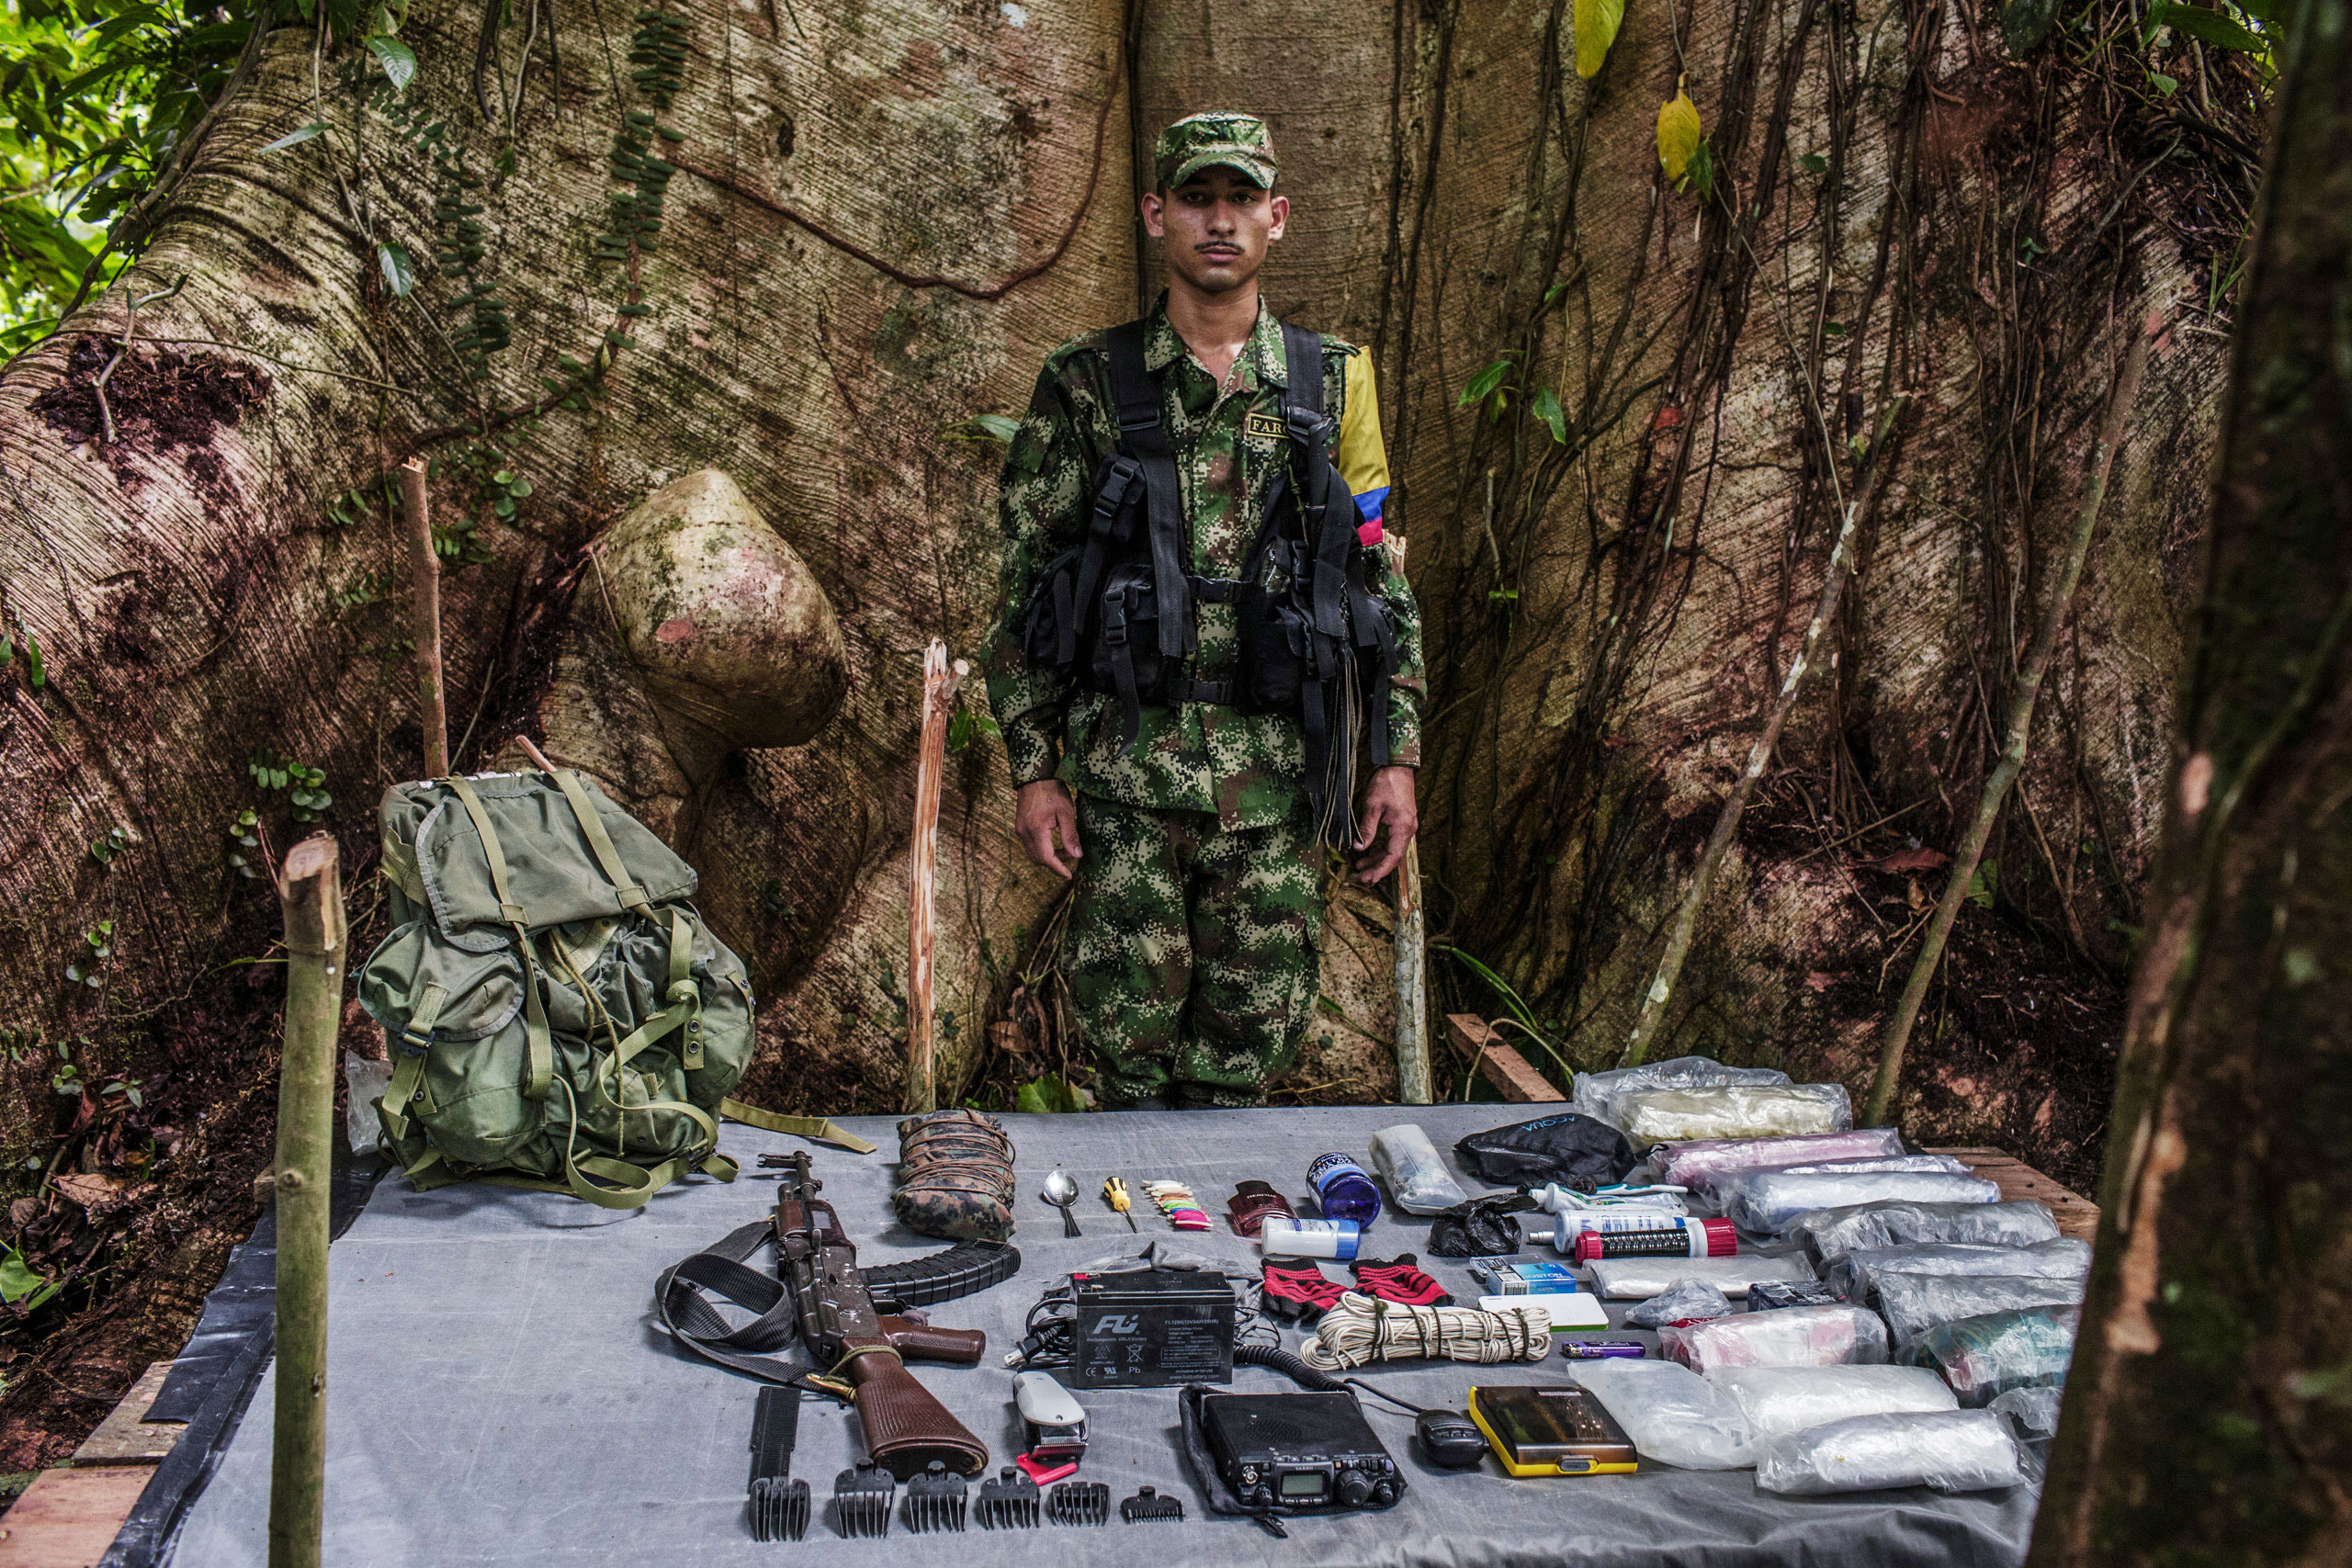 Carlos,  19-years old is a radio operator and electrician with FARC. The radio requires a four pound battery which he carries, along with tools to repair machinery.